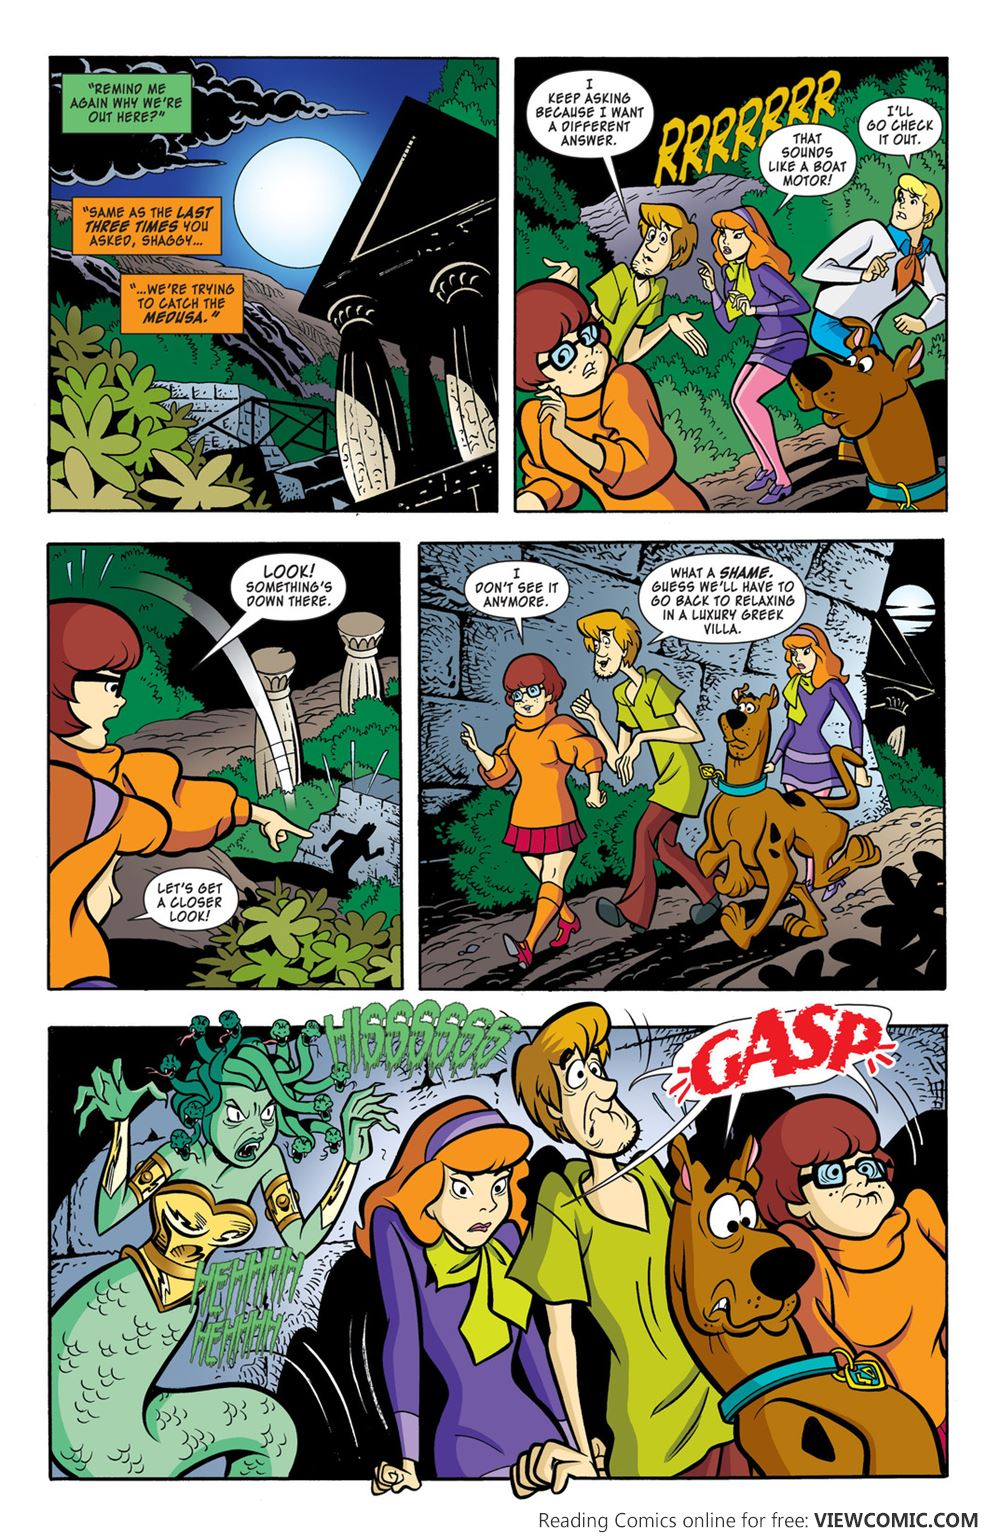 Scooby-Doo, Where Are You? 059 (2015) …   | Viewcomic